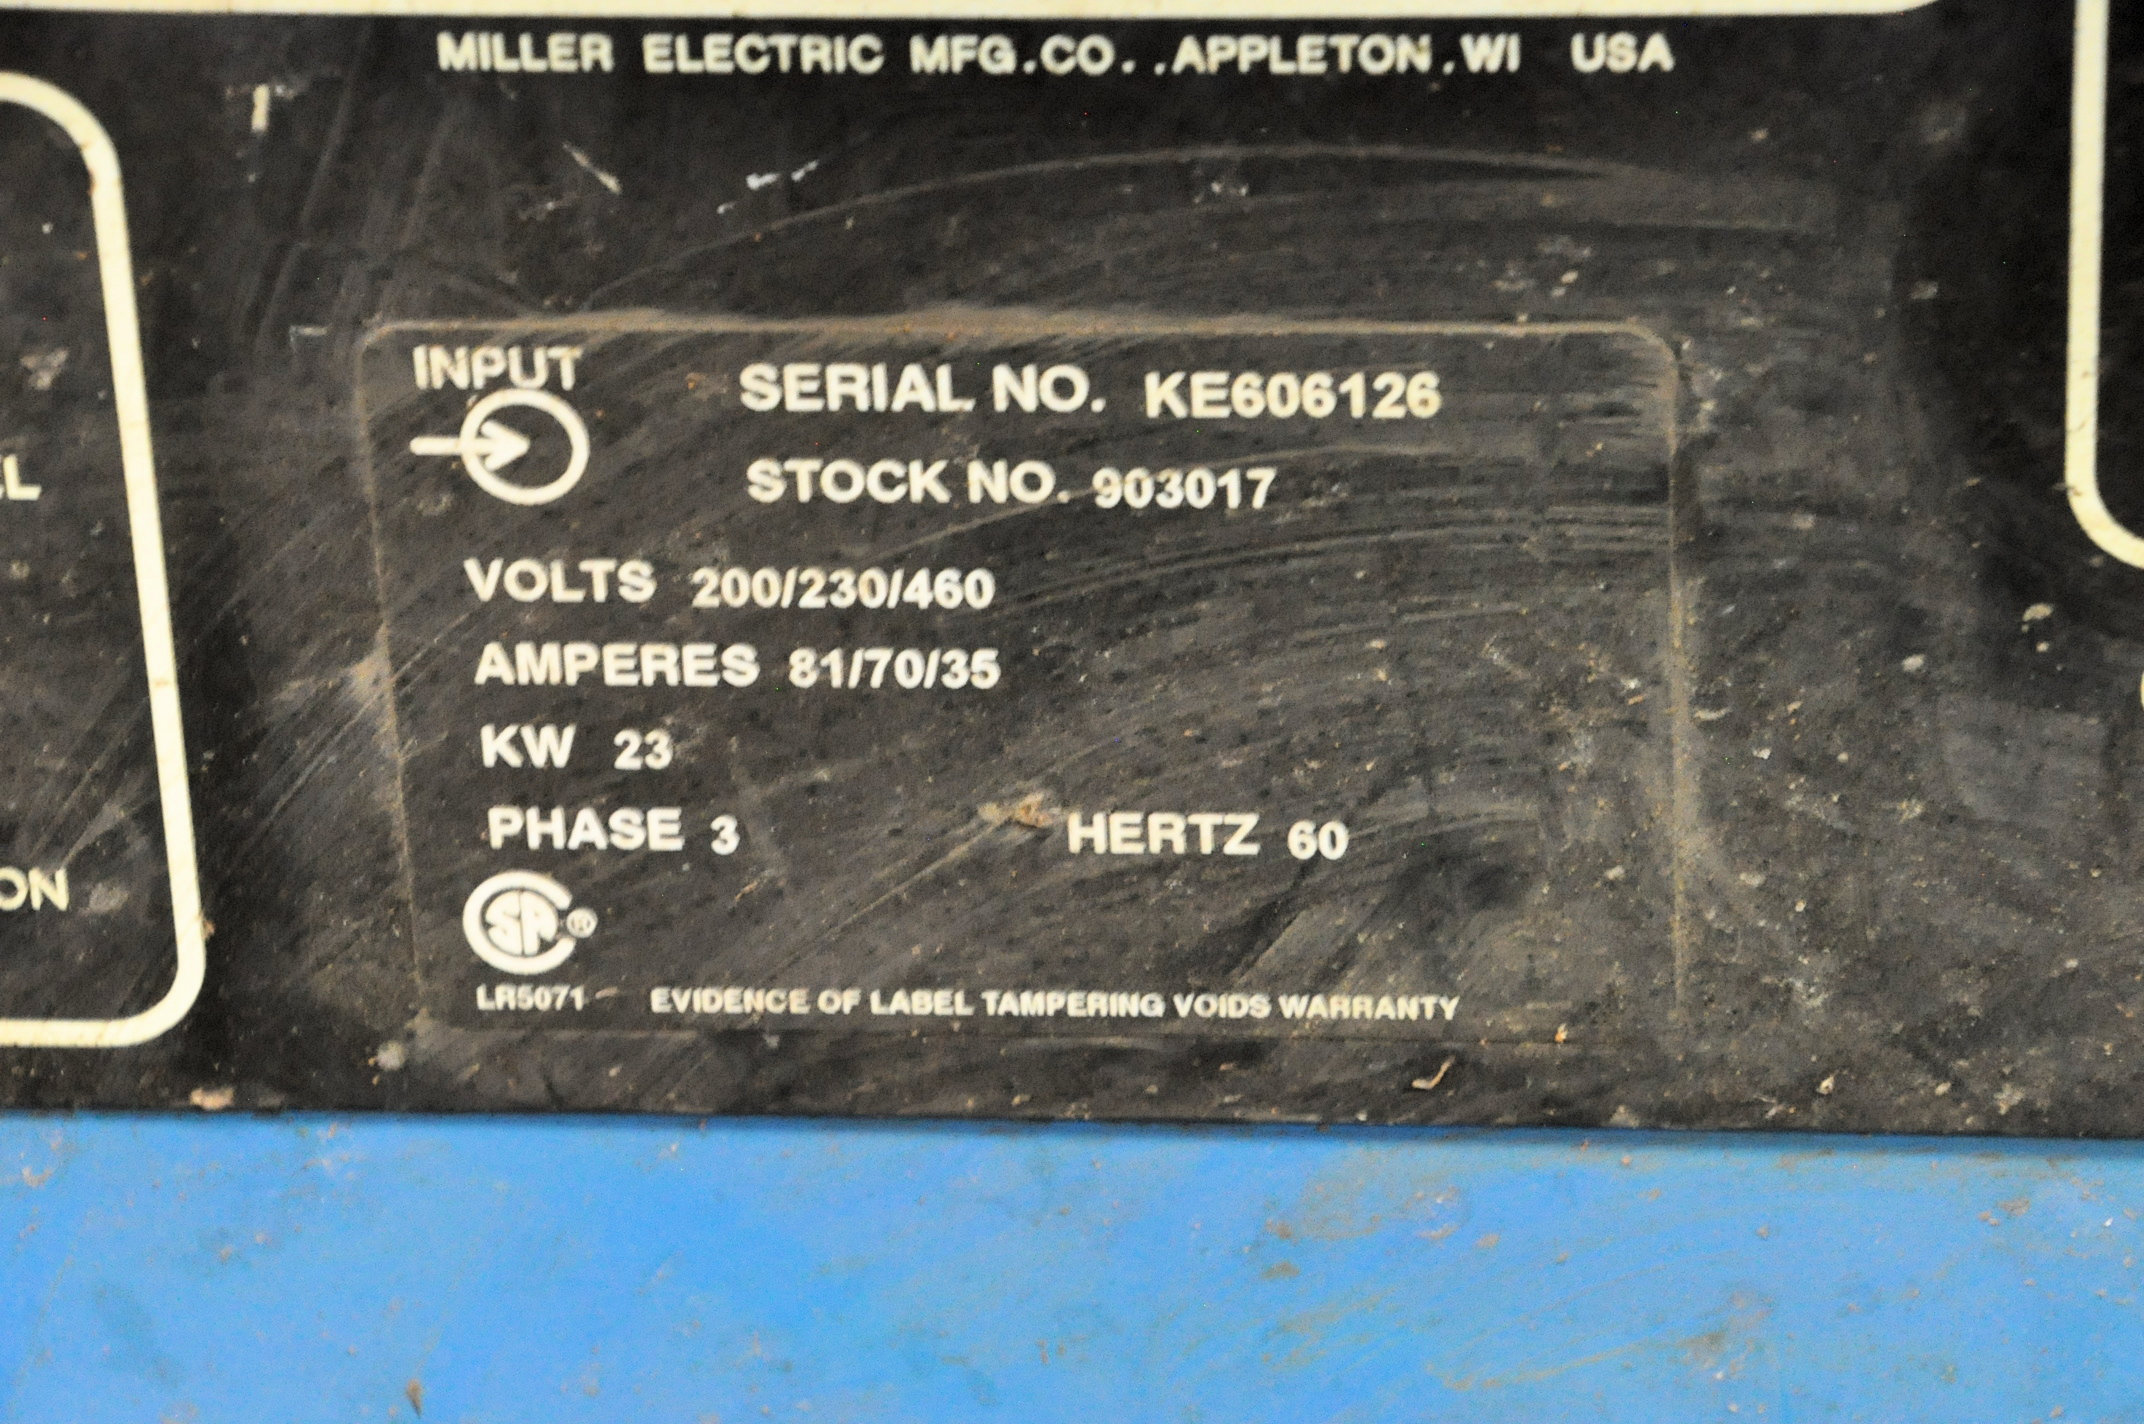 Miller Deltaweld 451, 450-Amp Capacity CV DC Arc Welding Power Source with Miller S-60 Wire Feeder - Image 3 of 3